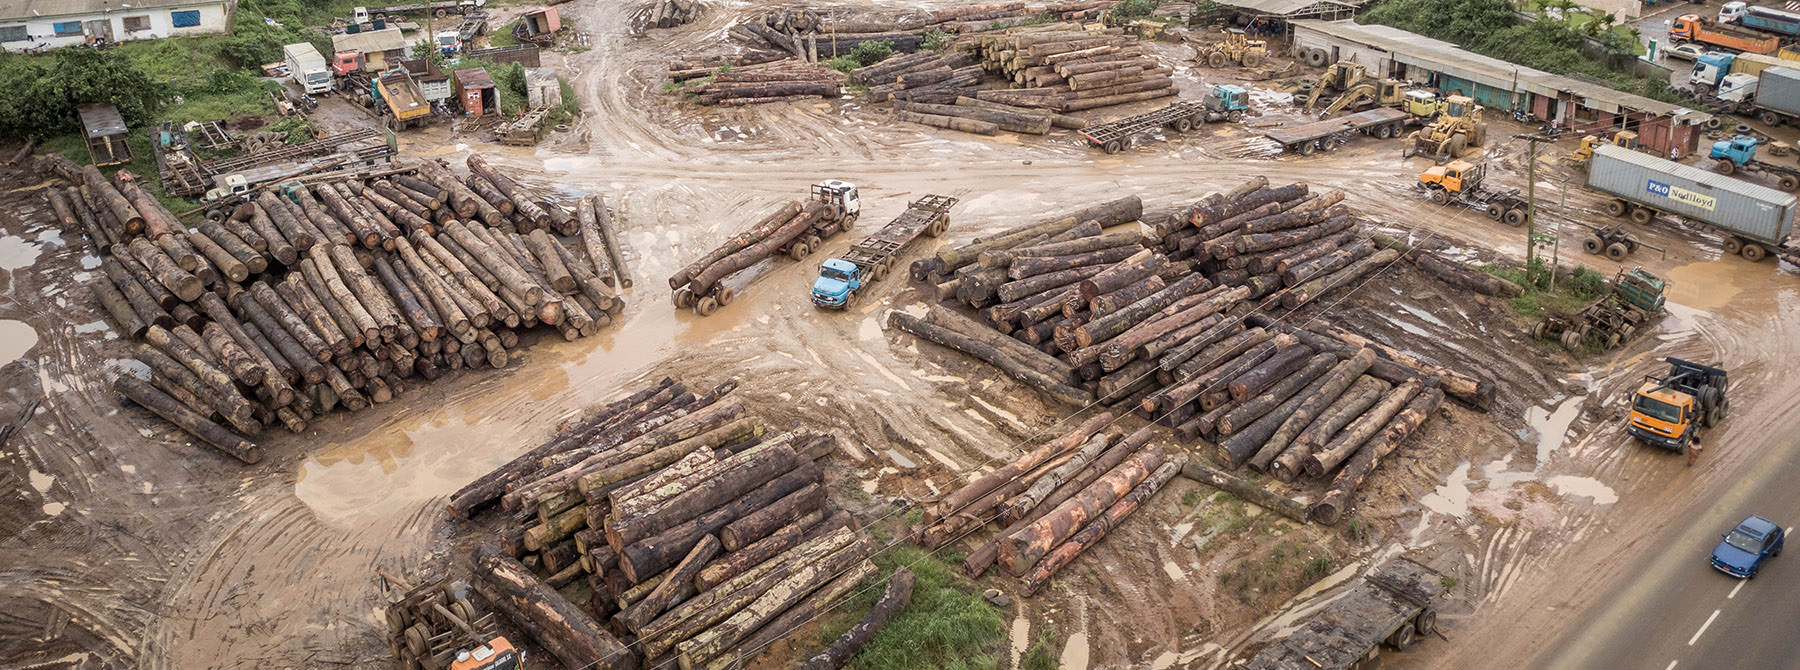 Log stockpile along the main road into Douala, Cameroon © Andrew Walmsley / TRAFFIC